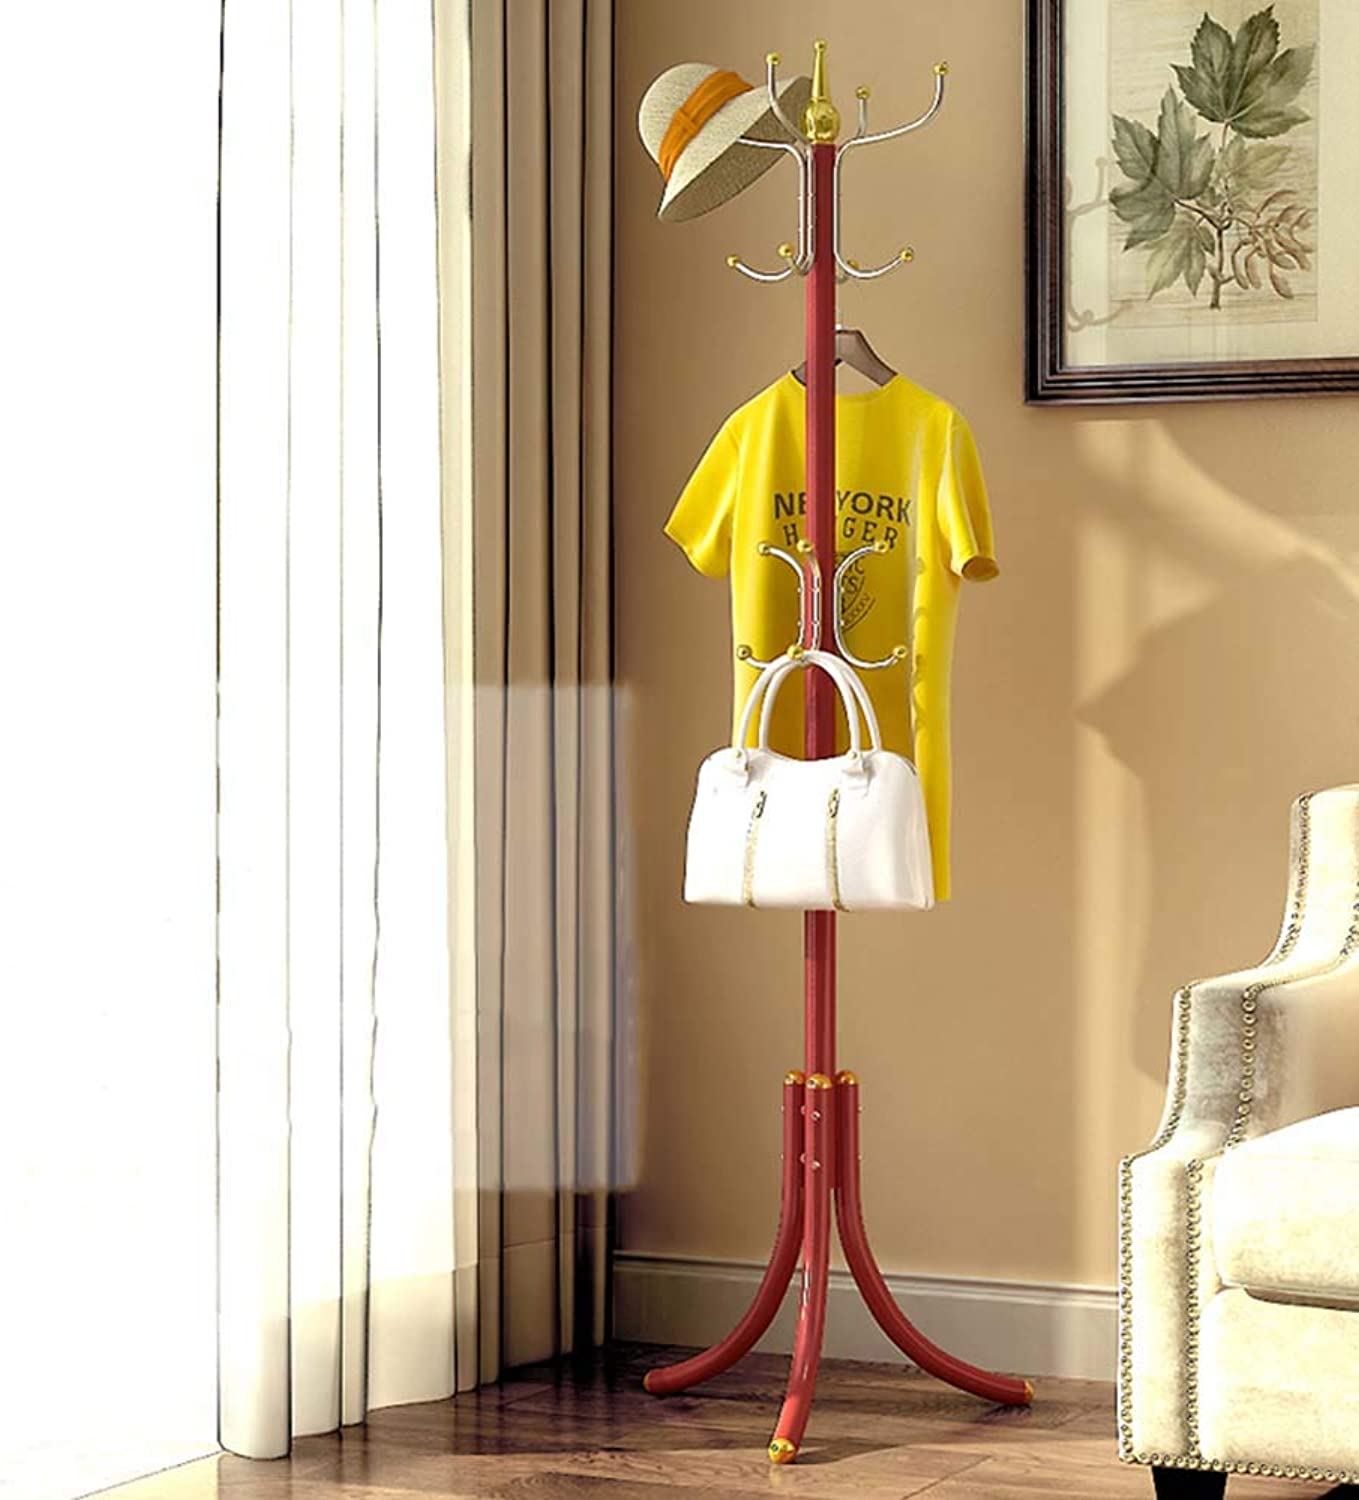 Chunlan Coat rack Metal Coat Rack, Hat Rack, Umbrella Stand, Suitable for Home Or Office (color   RED)